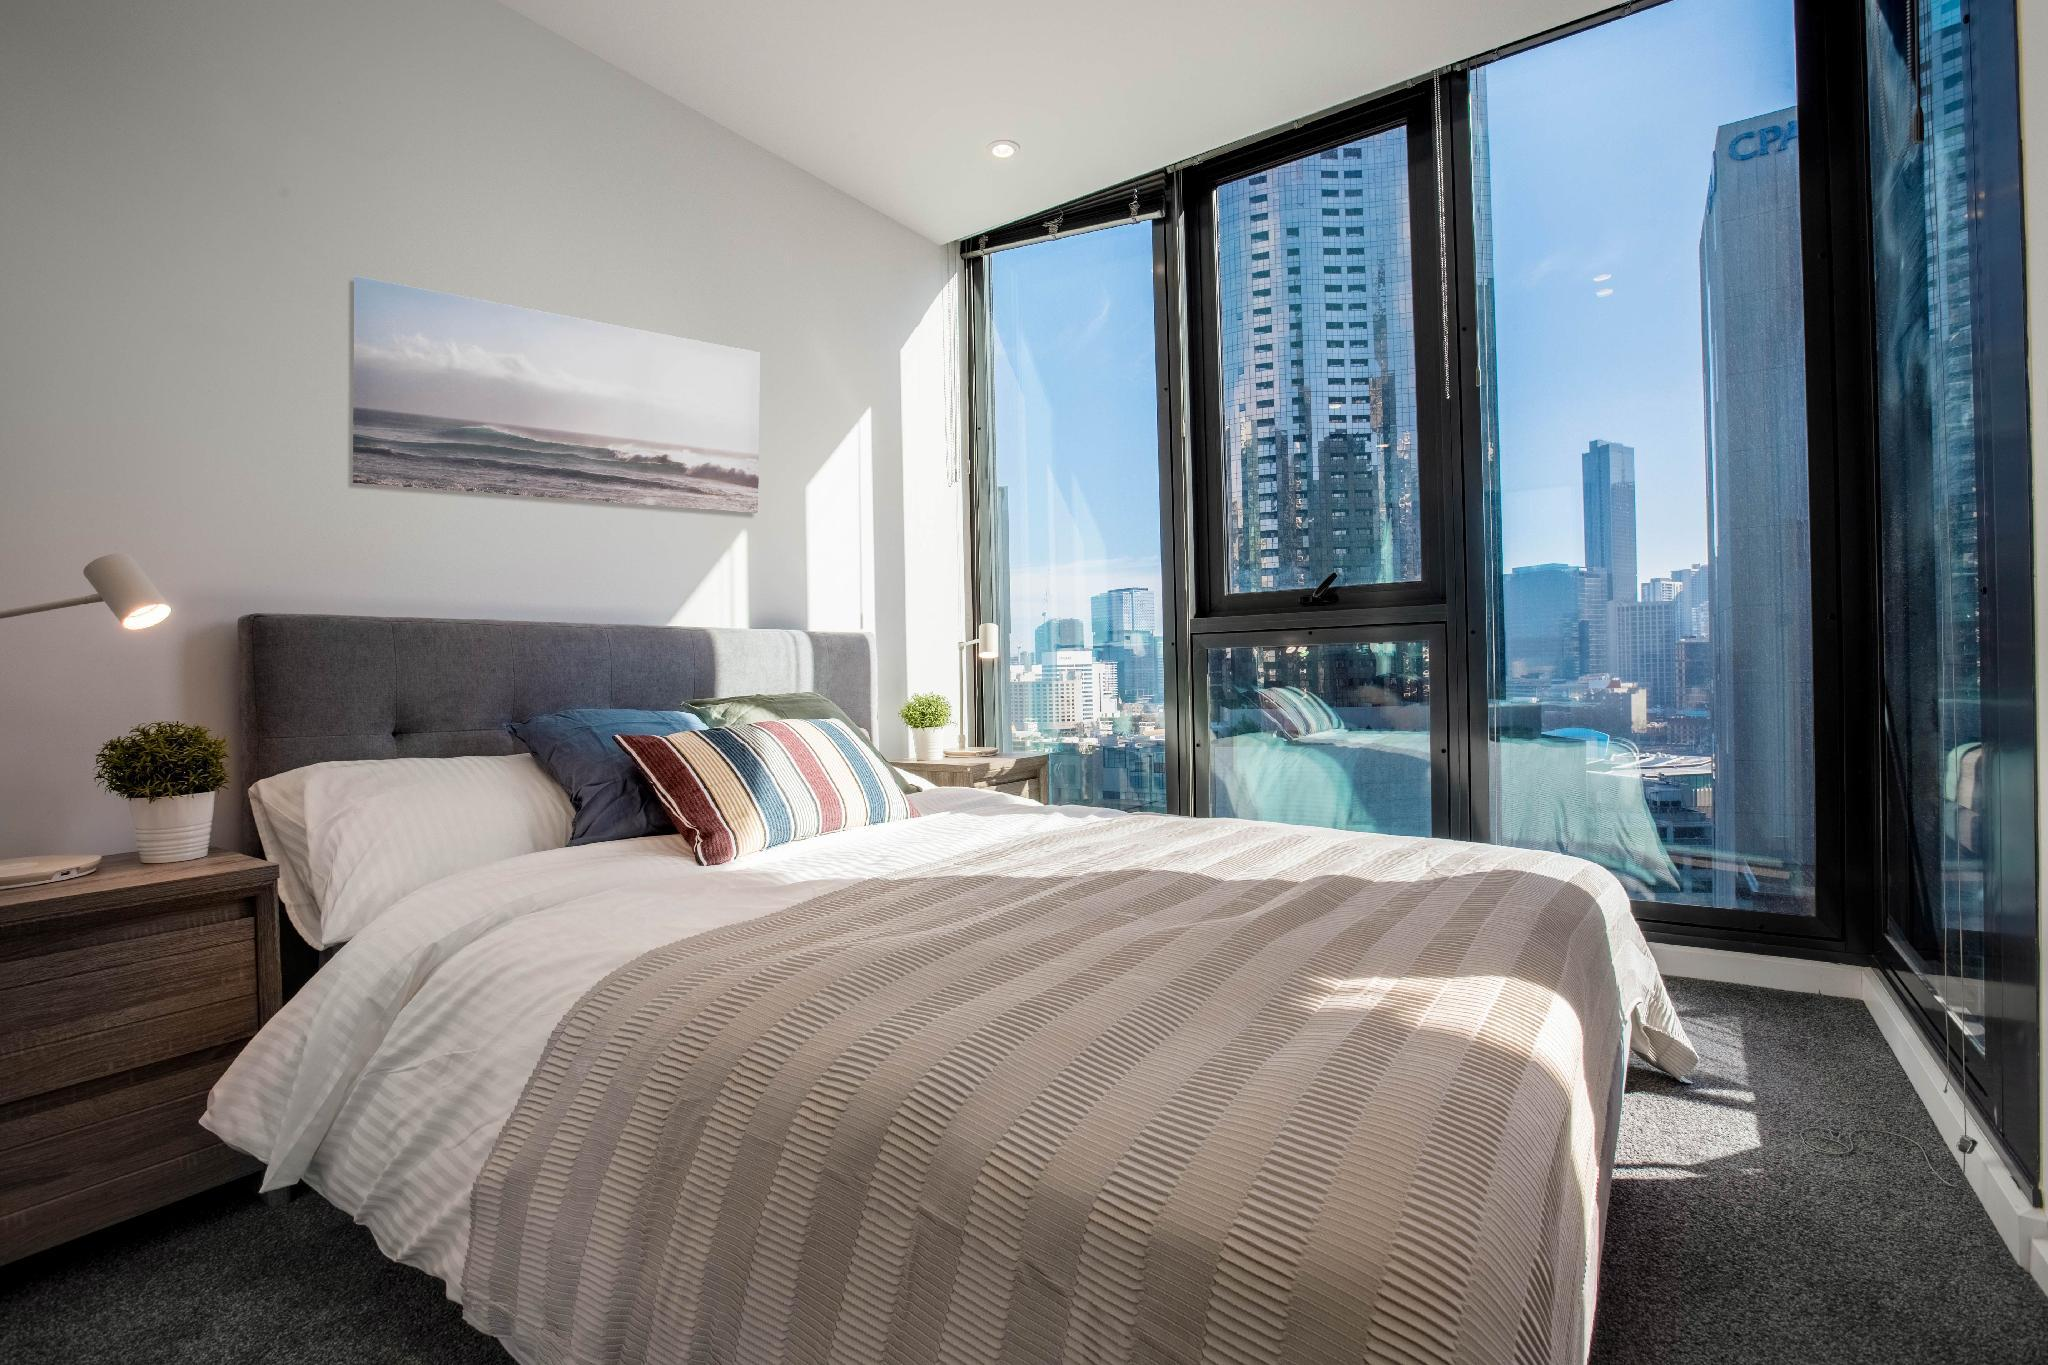 Southbank CR. Hotel Apartment